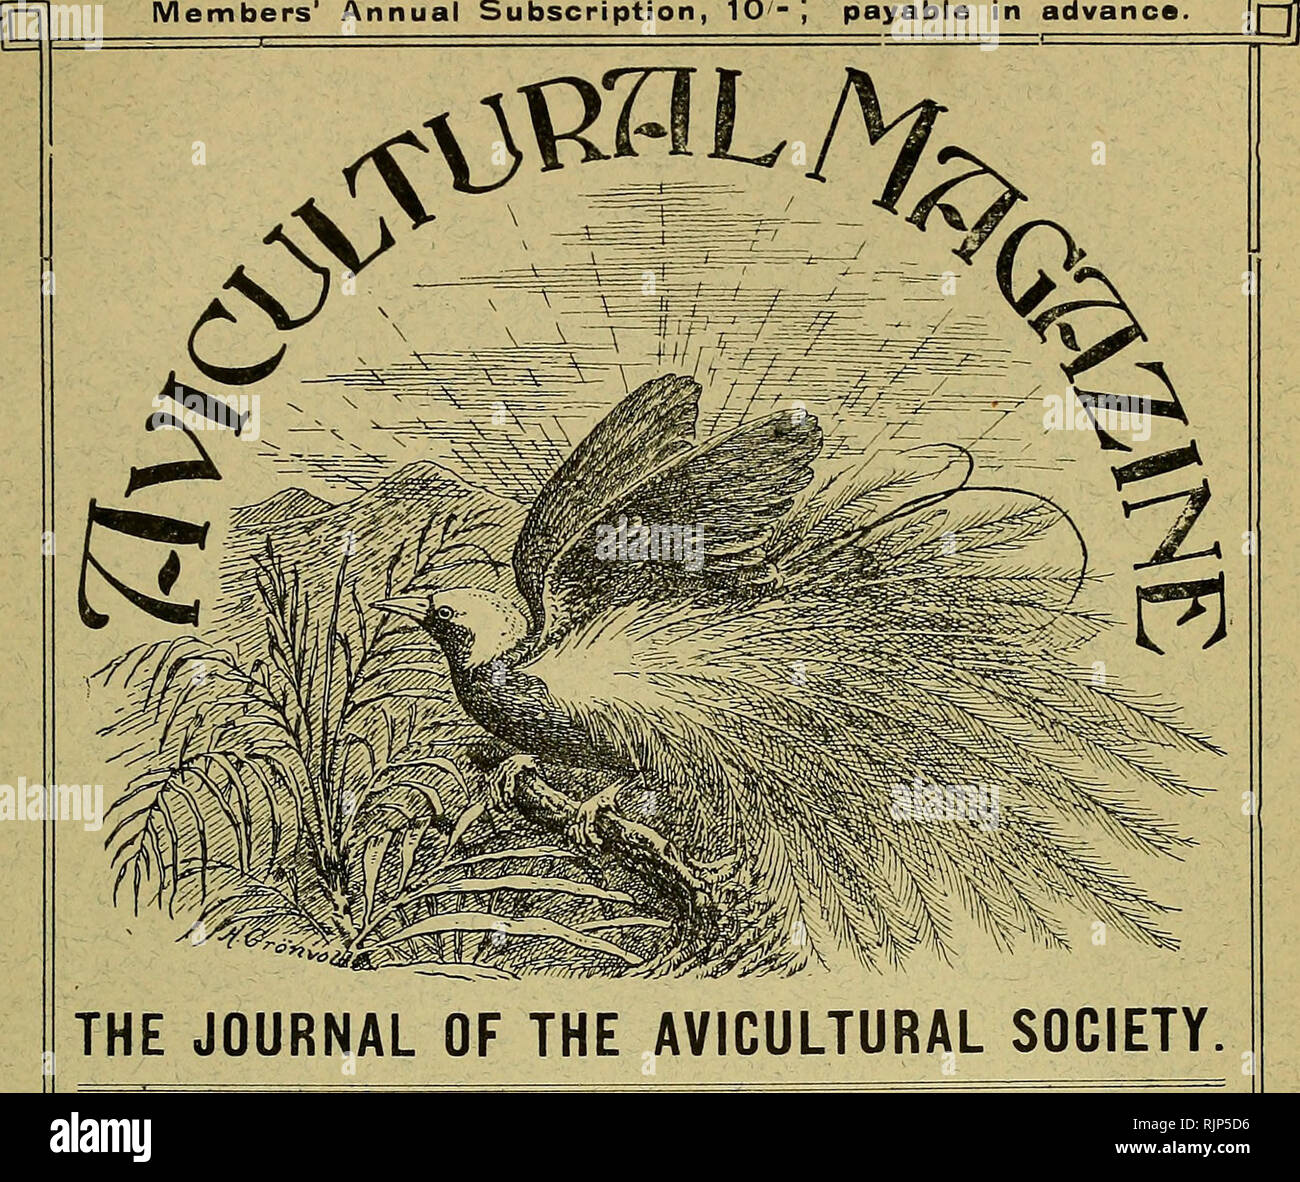 . The Avicultural magazine. Birds; Cage birds. NEW SERIES. MONTHLY. JULY, 1908. Vol. VI. No. 9 Price !*• 6**- 1^ Members' Annual Subscription, 10- ', payable in advance. [p|j. -^ CONTENTS.O^ Tlie Sarus Crane, [tvith plaff) by C. Harnby Smith ... The British Rail.s, by Percy W. Farmborough, F.Z.S The Weather and our Suiumer liirds, by P. K. M. Galloway Tlie Mountain Chat, by Dr. A. G. Bultkk ... The Nesting- of the Dwarf (Sronnd Dove, by w. E. Tkschkmakkr Notes on my Bird.s, by Rosii! Ai.nKK.soN No 1 ICES OF New Book-S, etc. : Briti.sh Birds Preliminary Report on an InvesLigation of the seasona - Stock Image